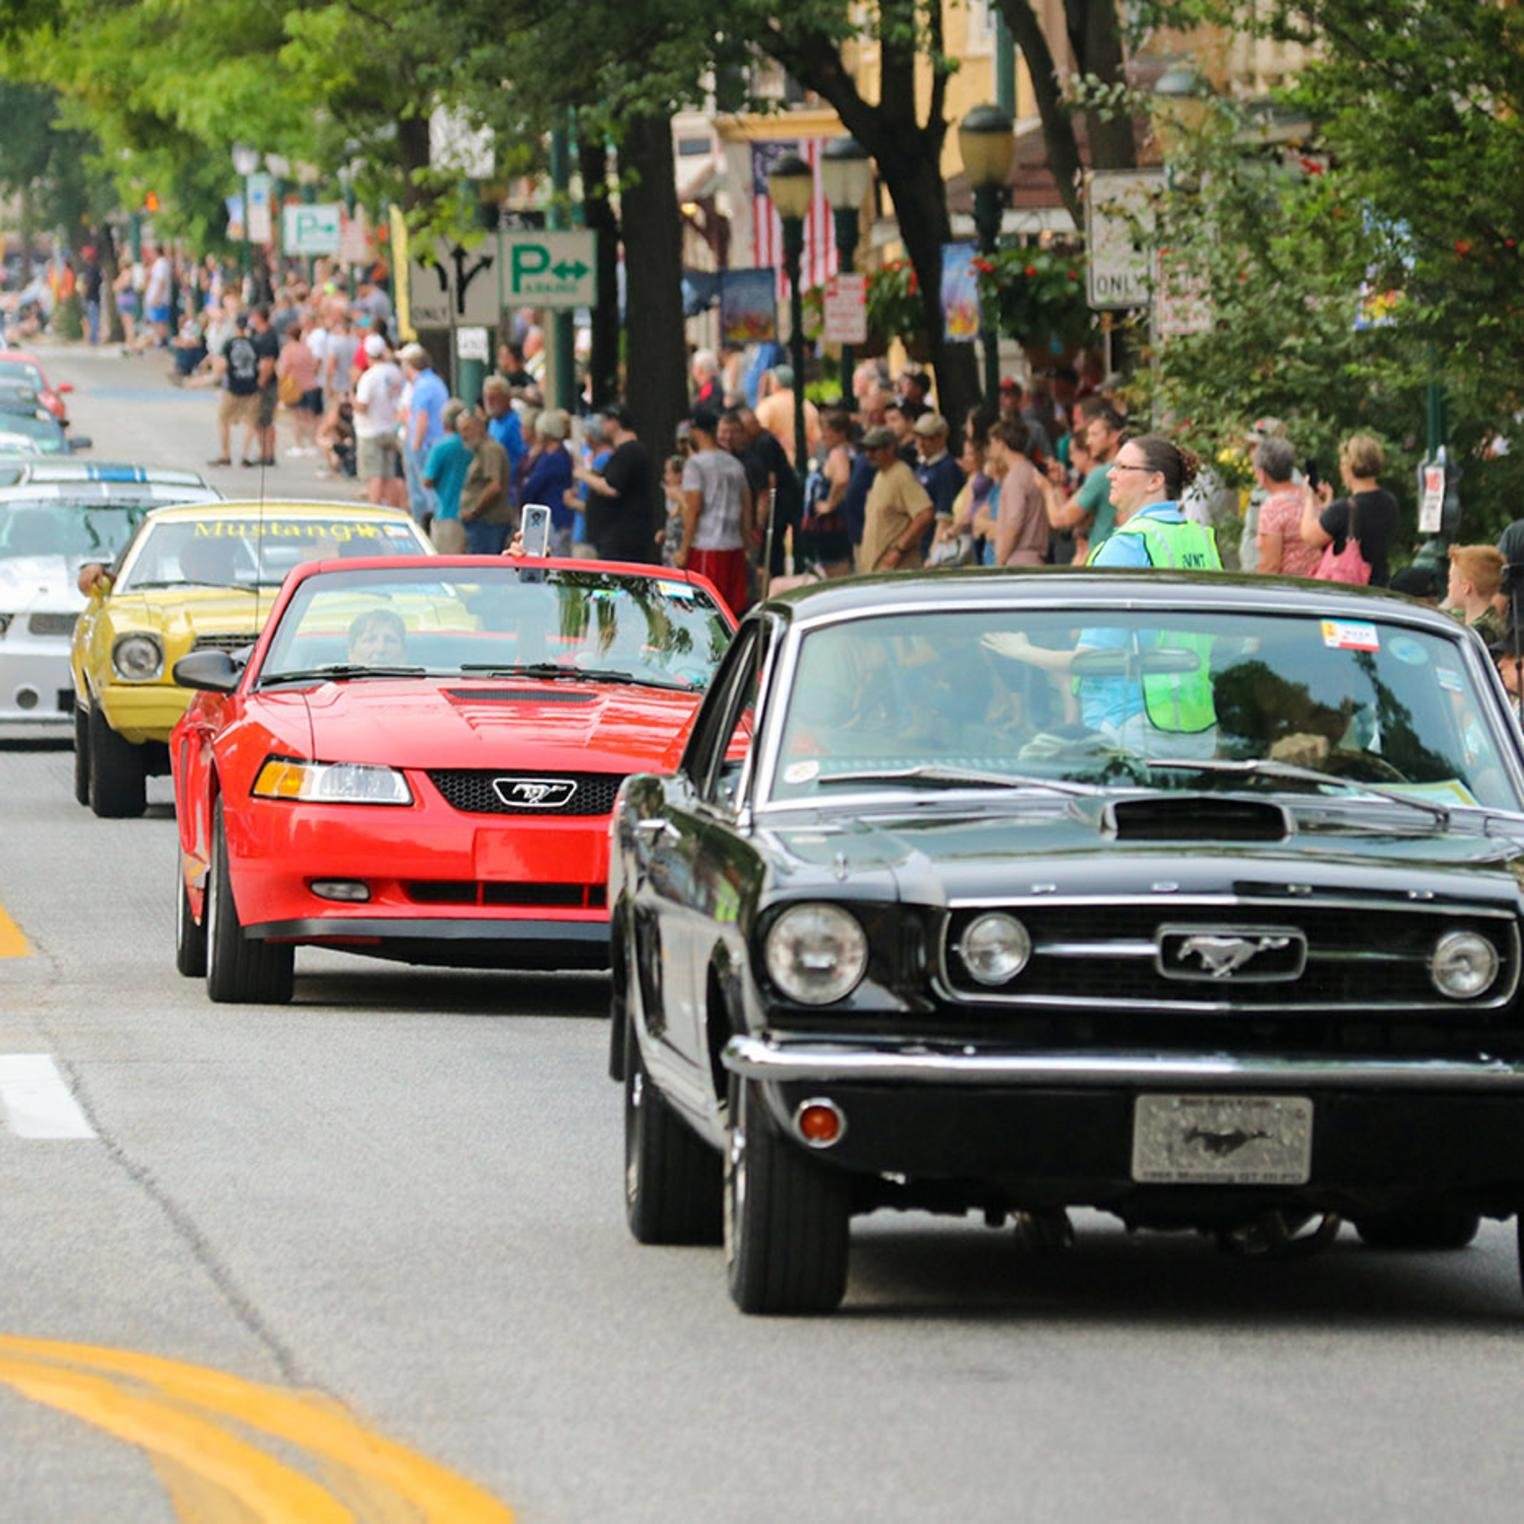 Downtown Ford Parade